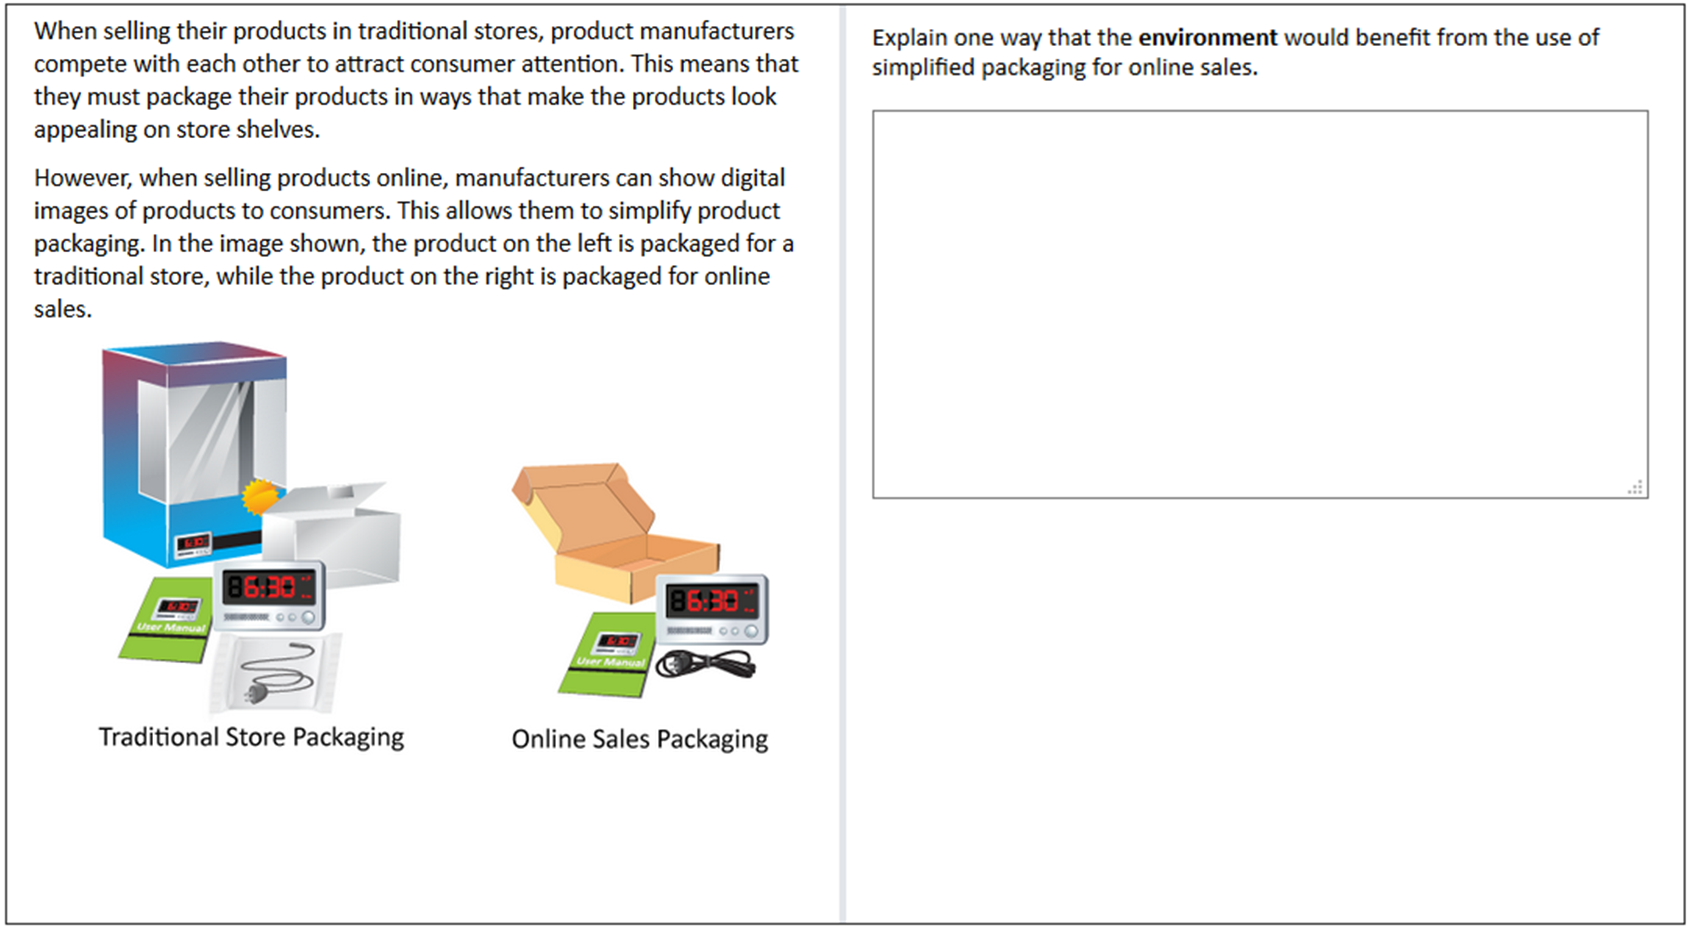 Open-ended question packaging and its environmental impact